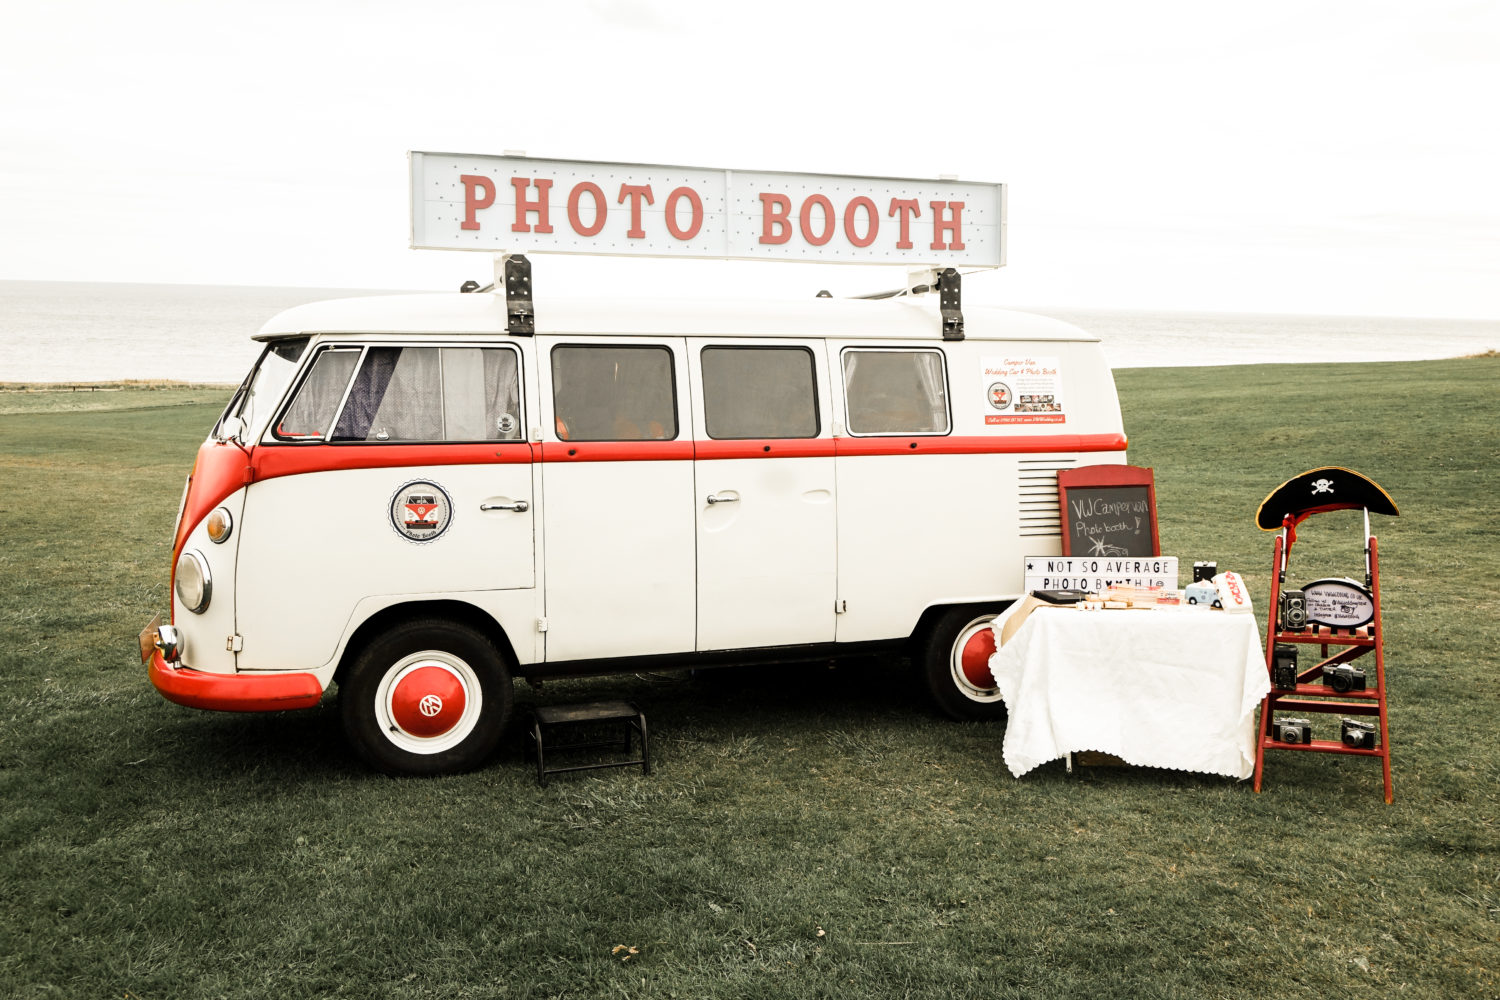 VW Photo Booth by the sea in Newcastle Sunderland